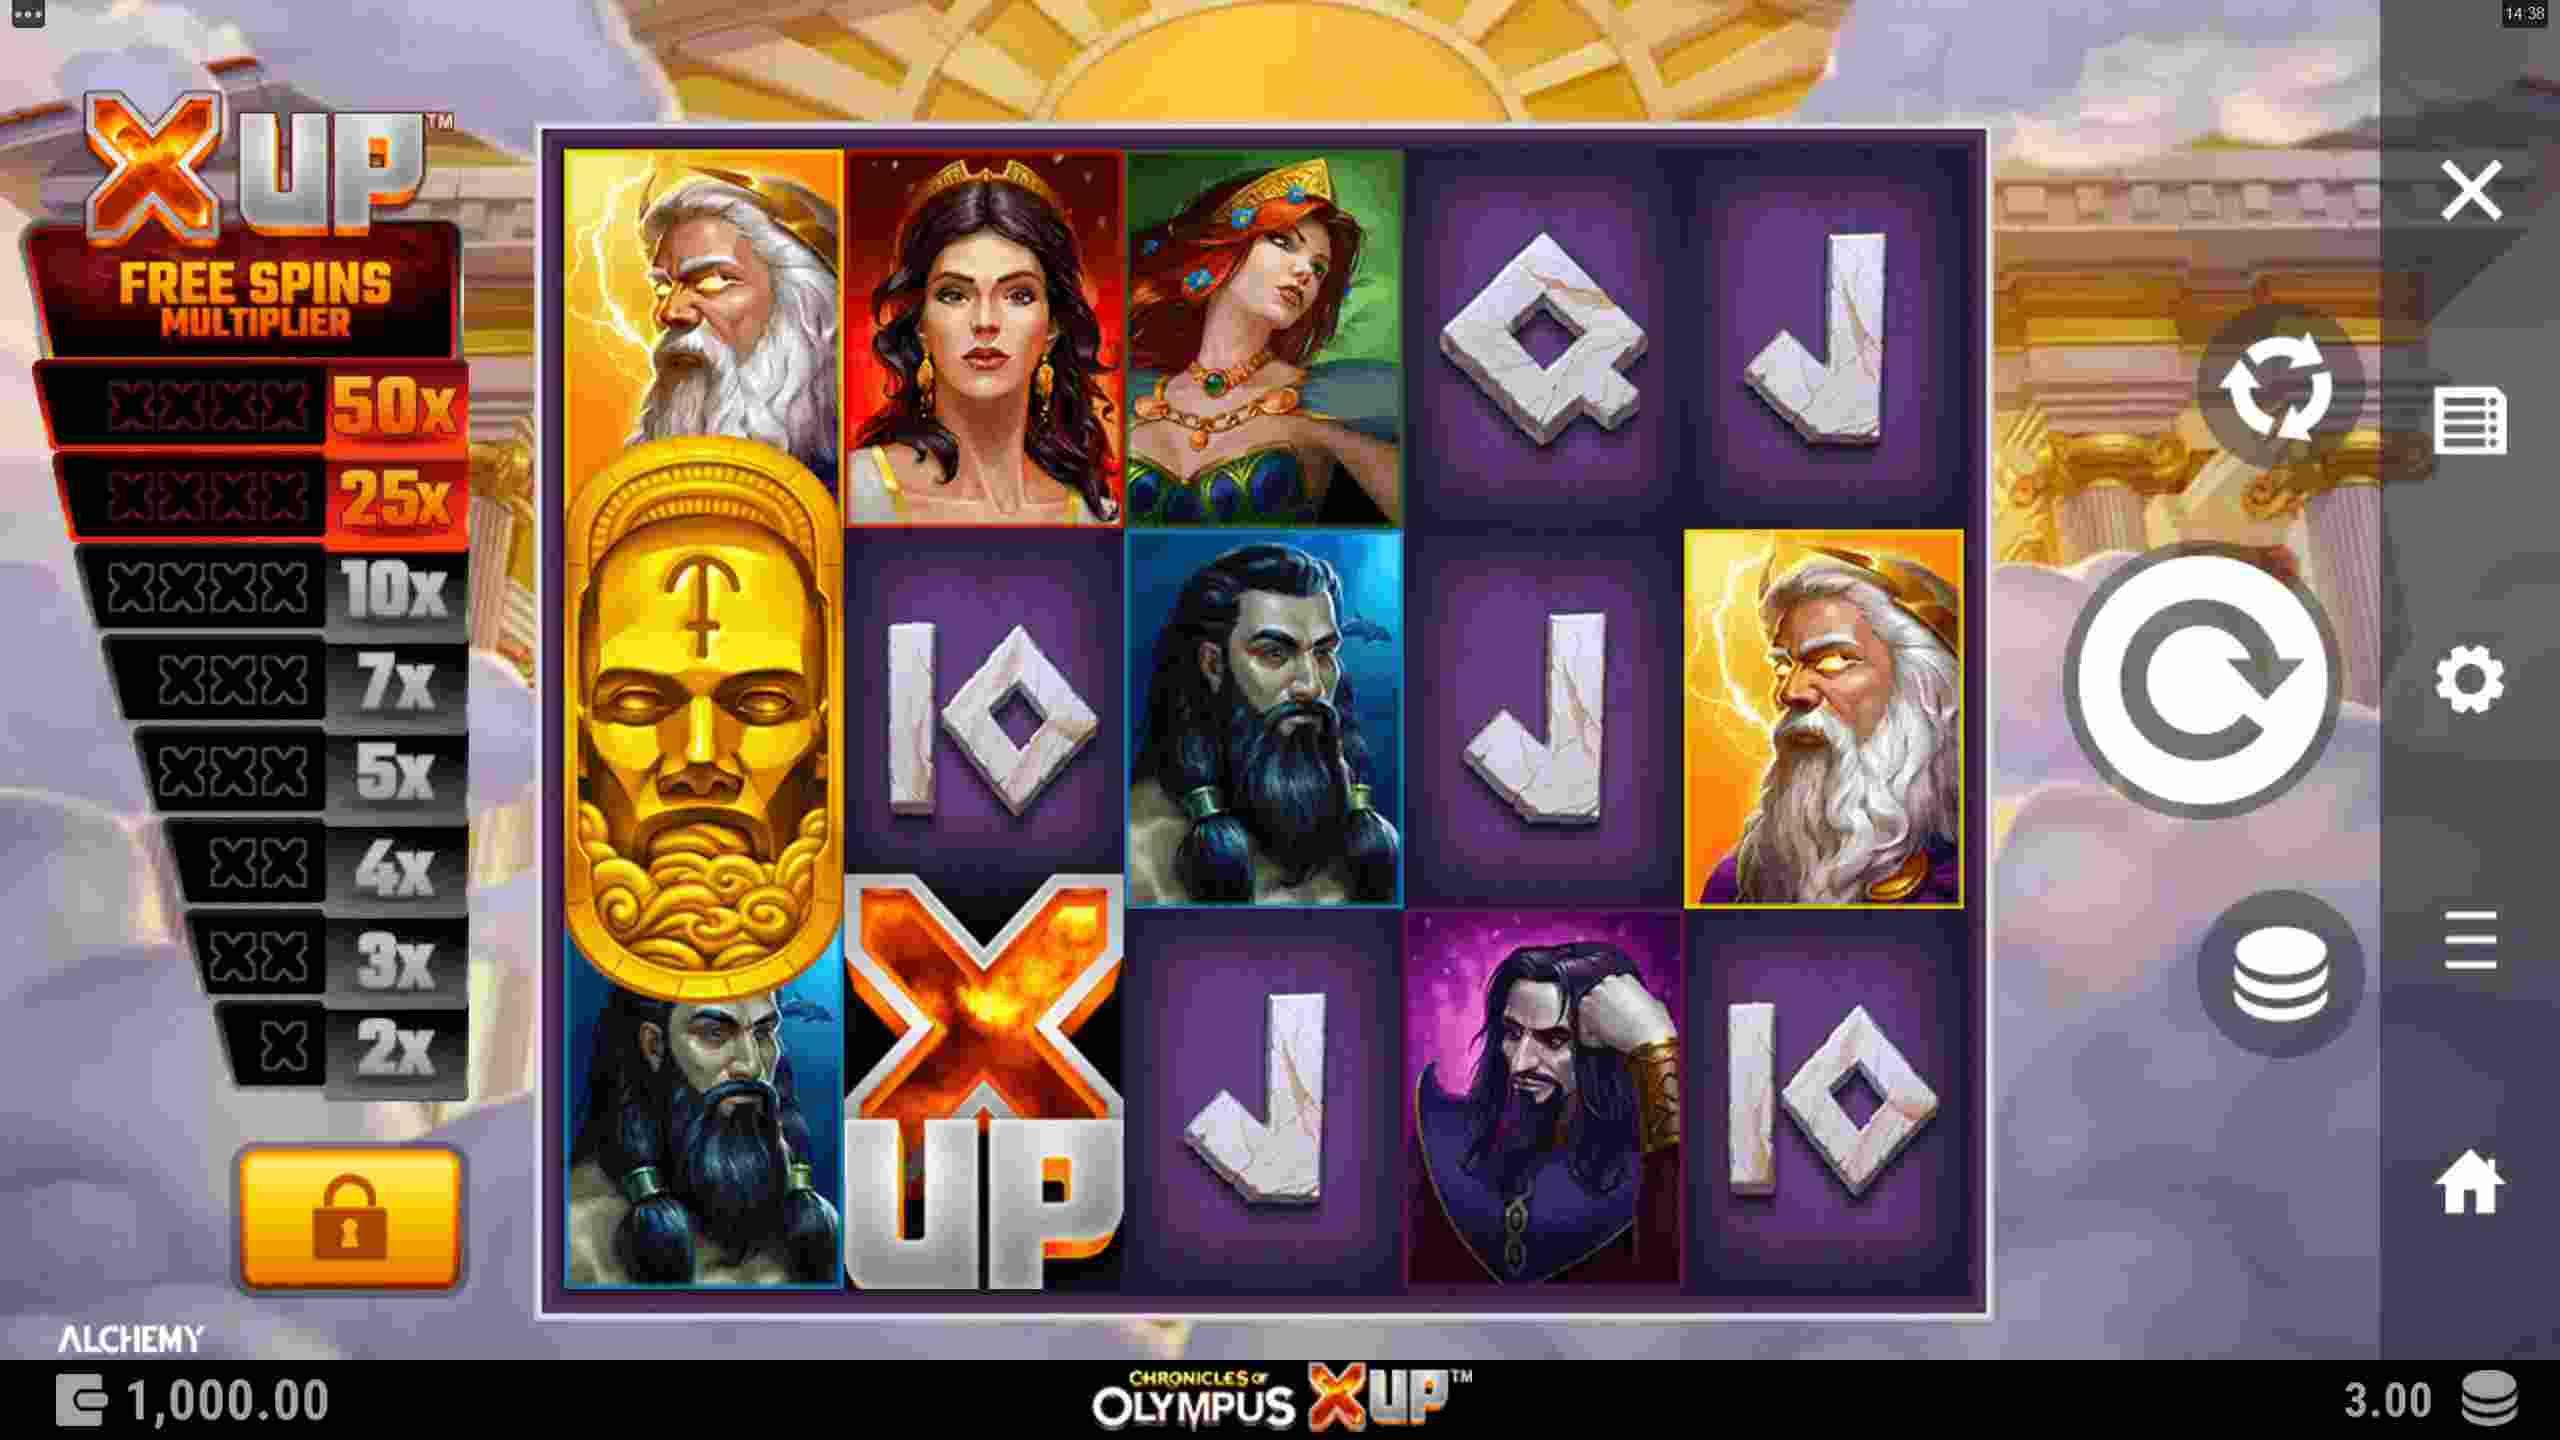 Chronicles of Olympus X UP Base Game